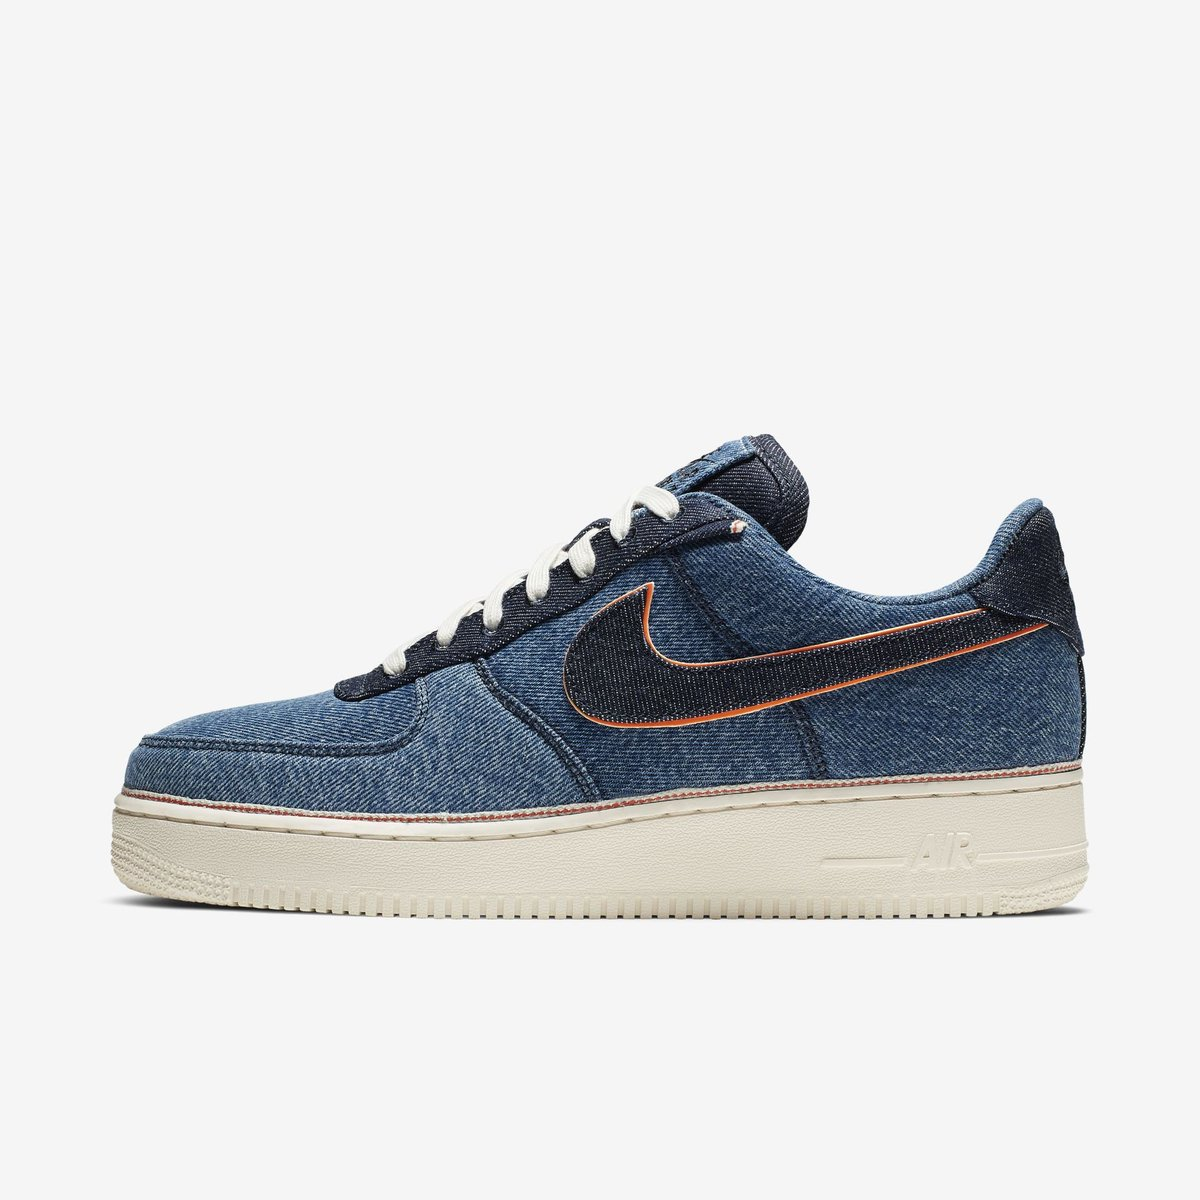 9bd562dae74 J23 iPhone App Twitter Tweet: 3x1 x Nike Air Force 1 now on regular Nike